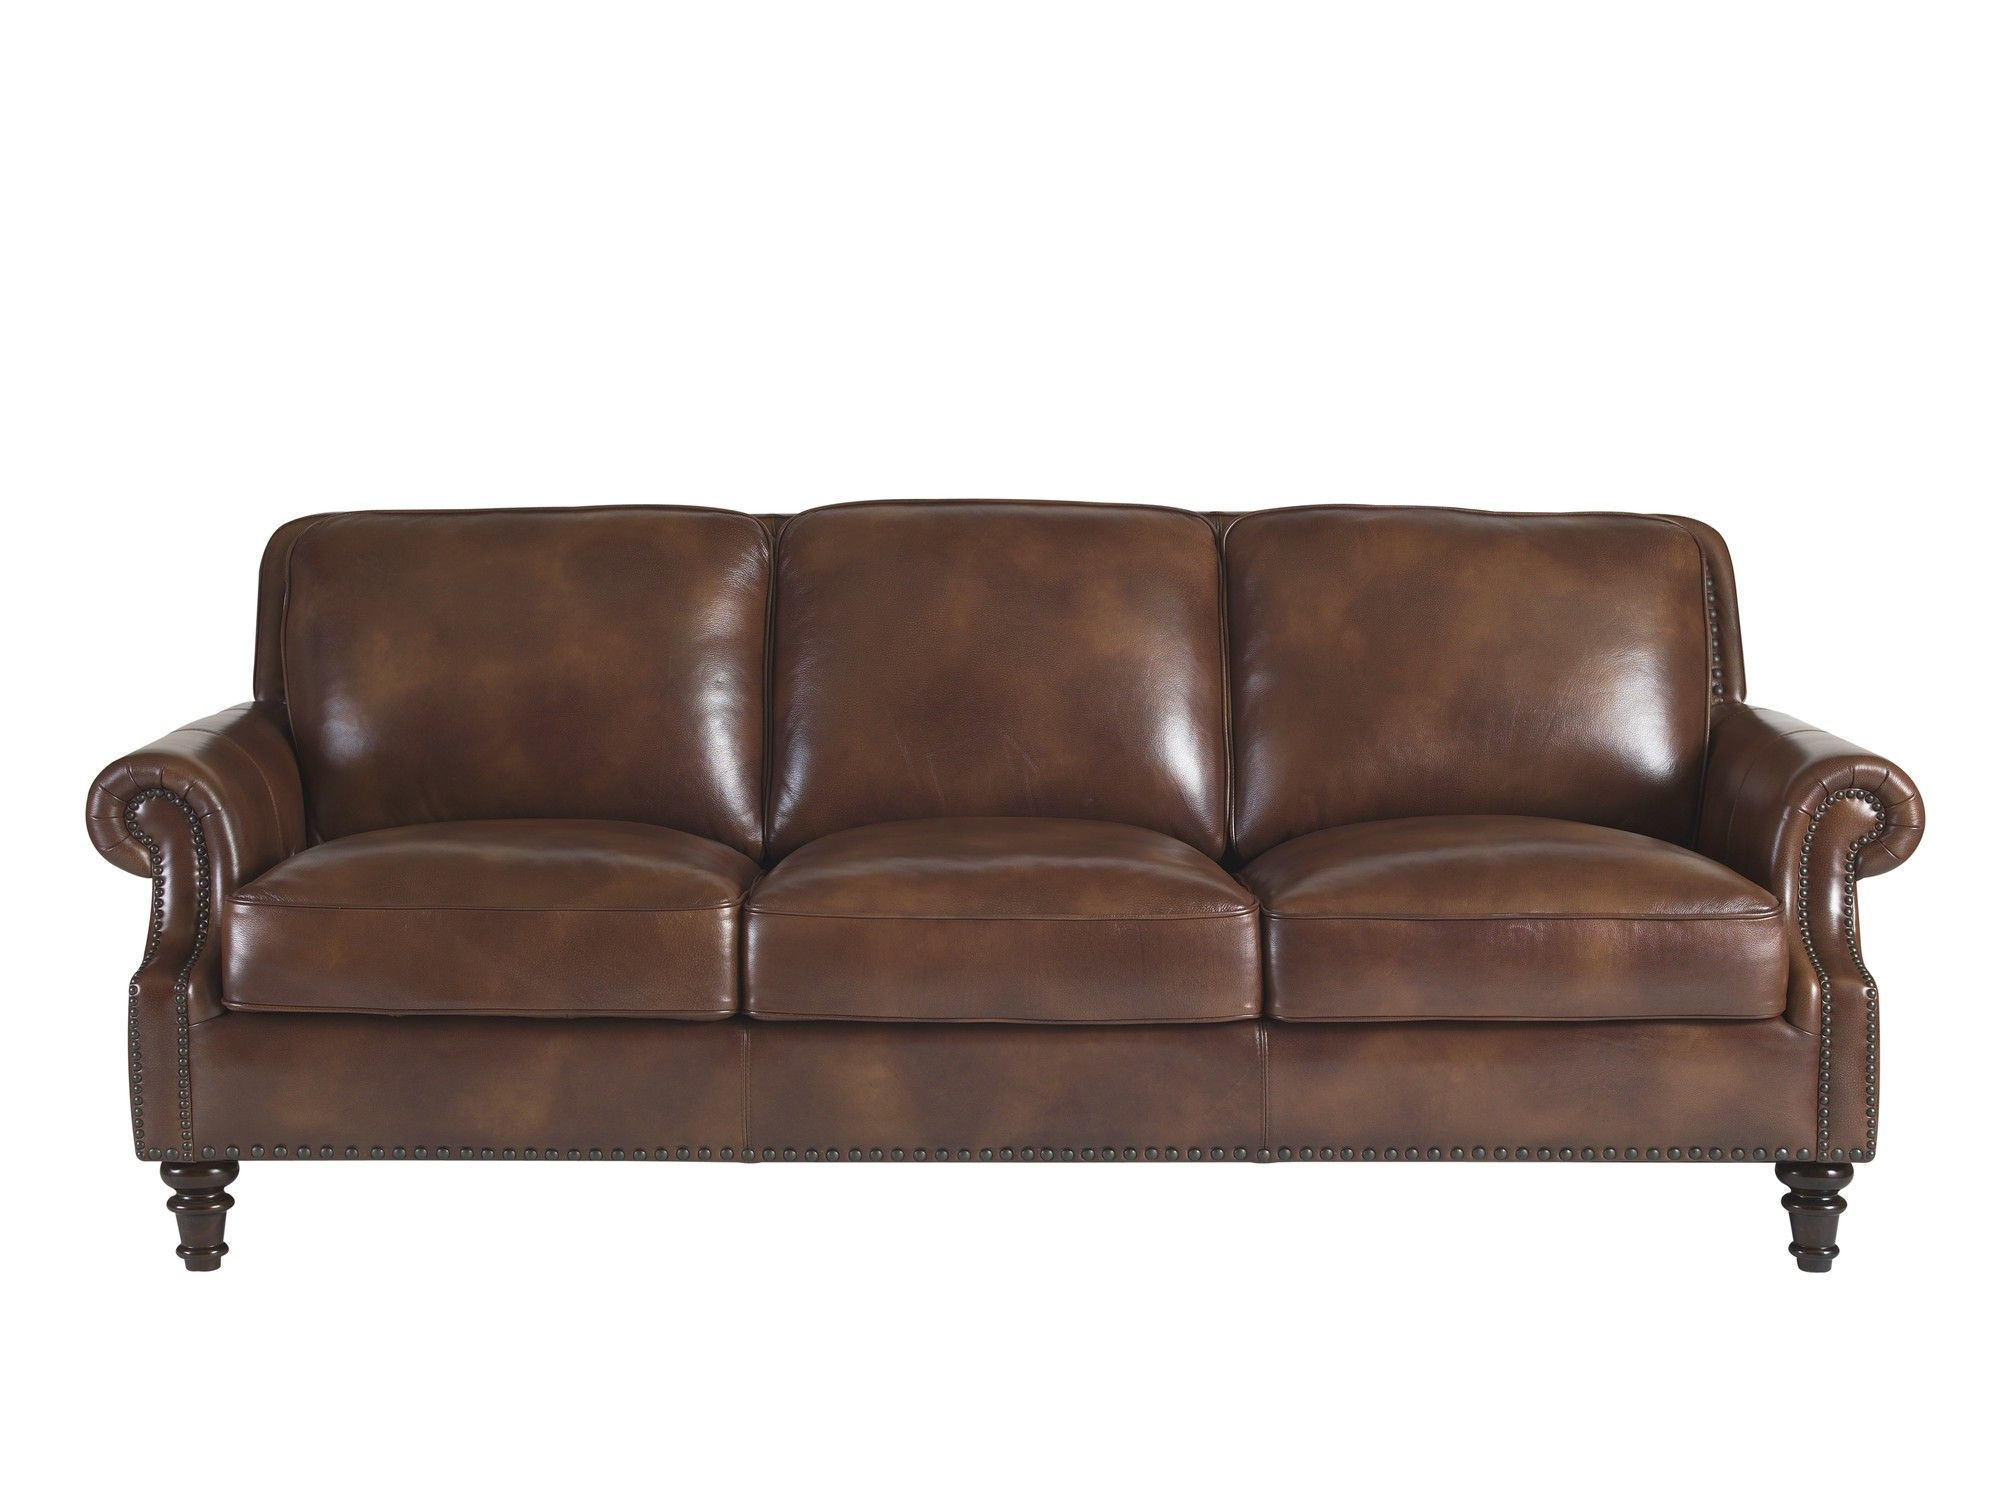 densmore leather sofa products leather sofa sofa leather rh pinterest com au